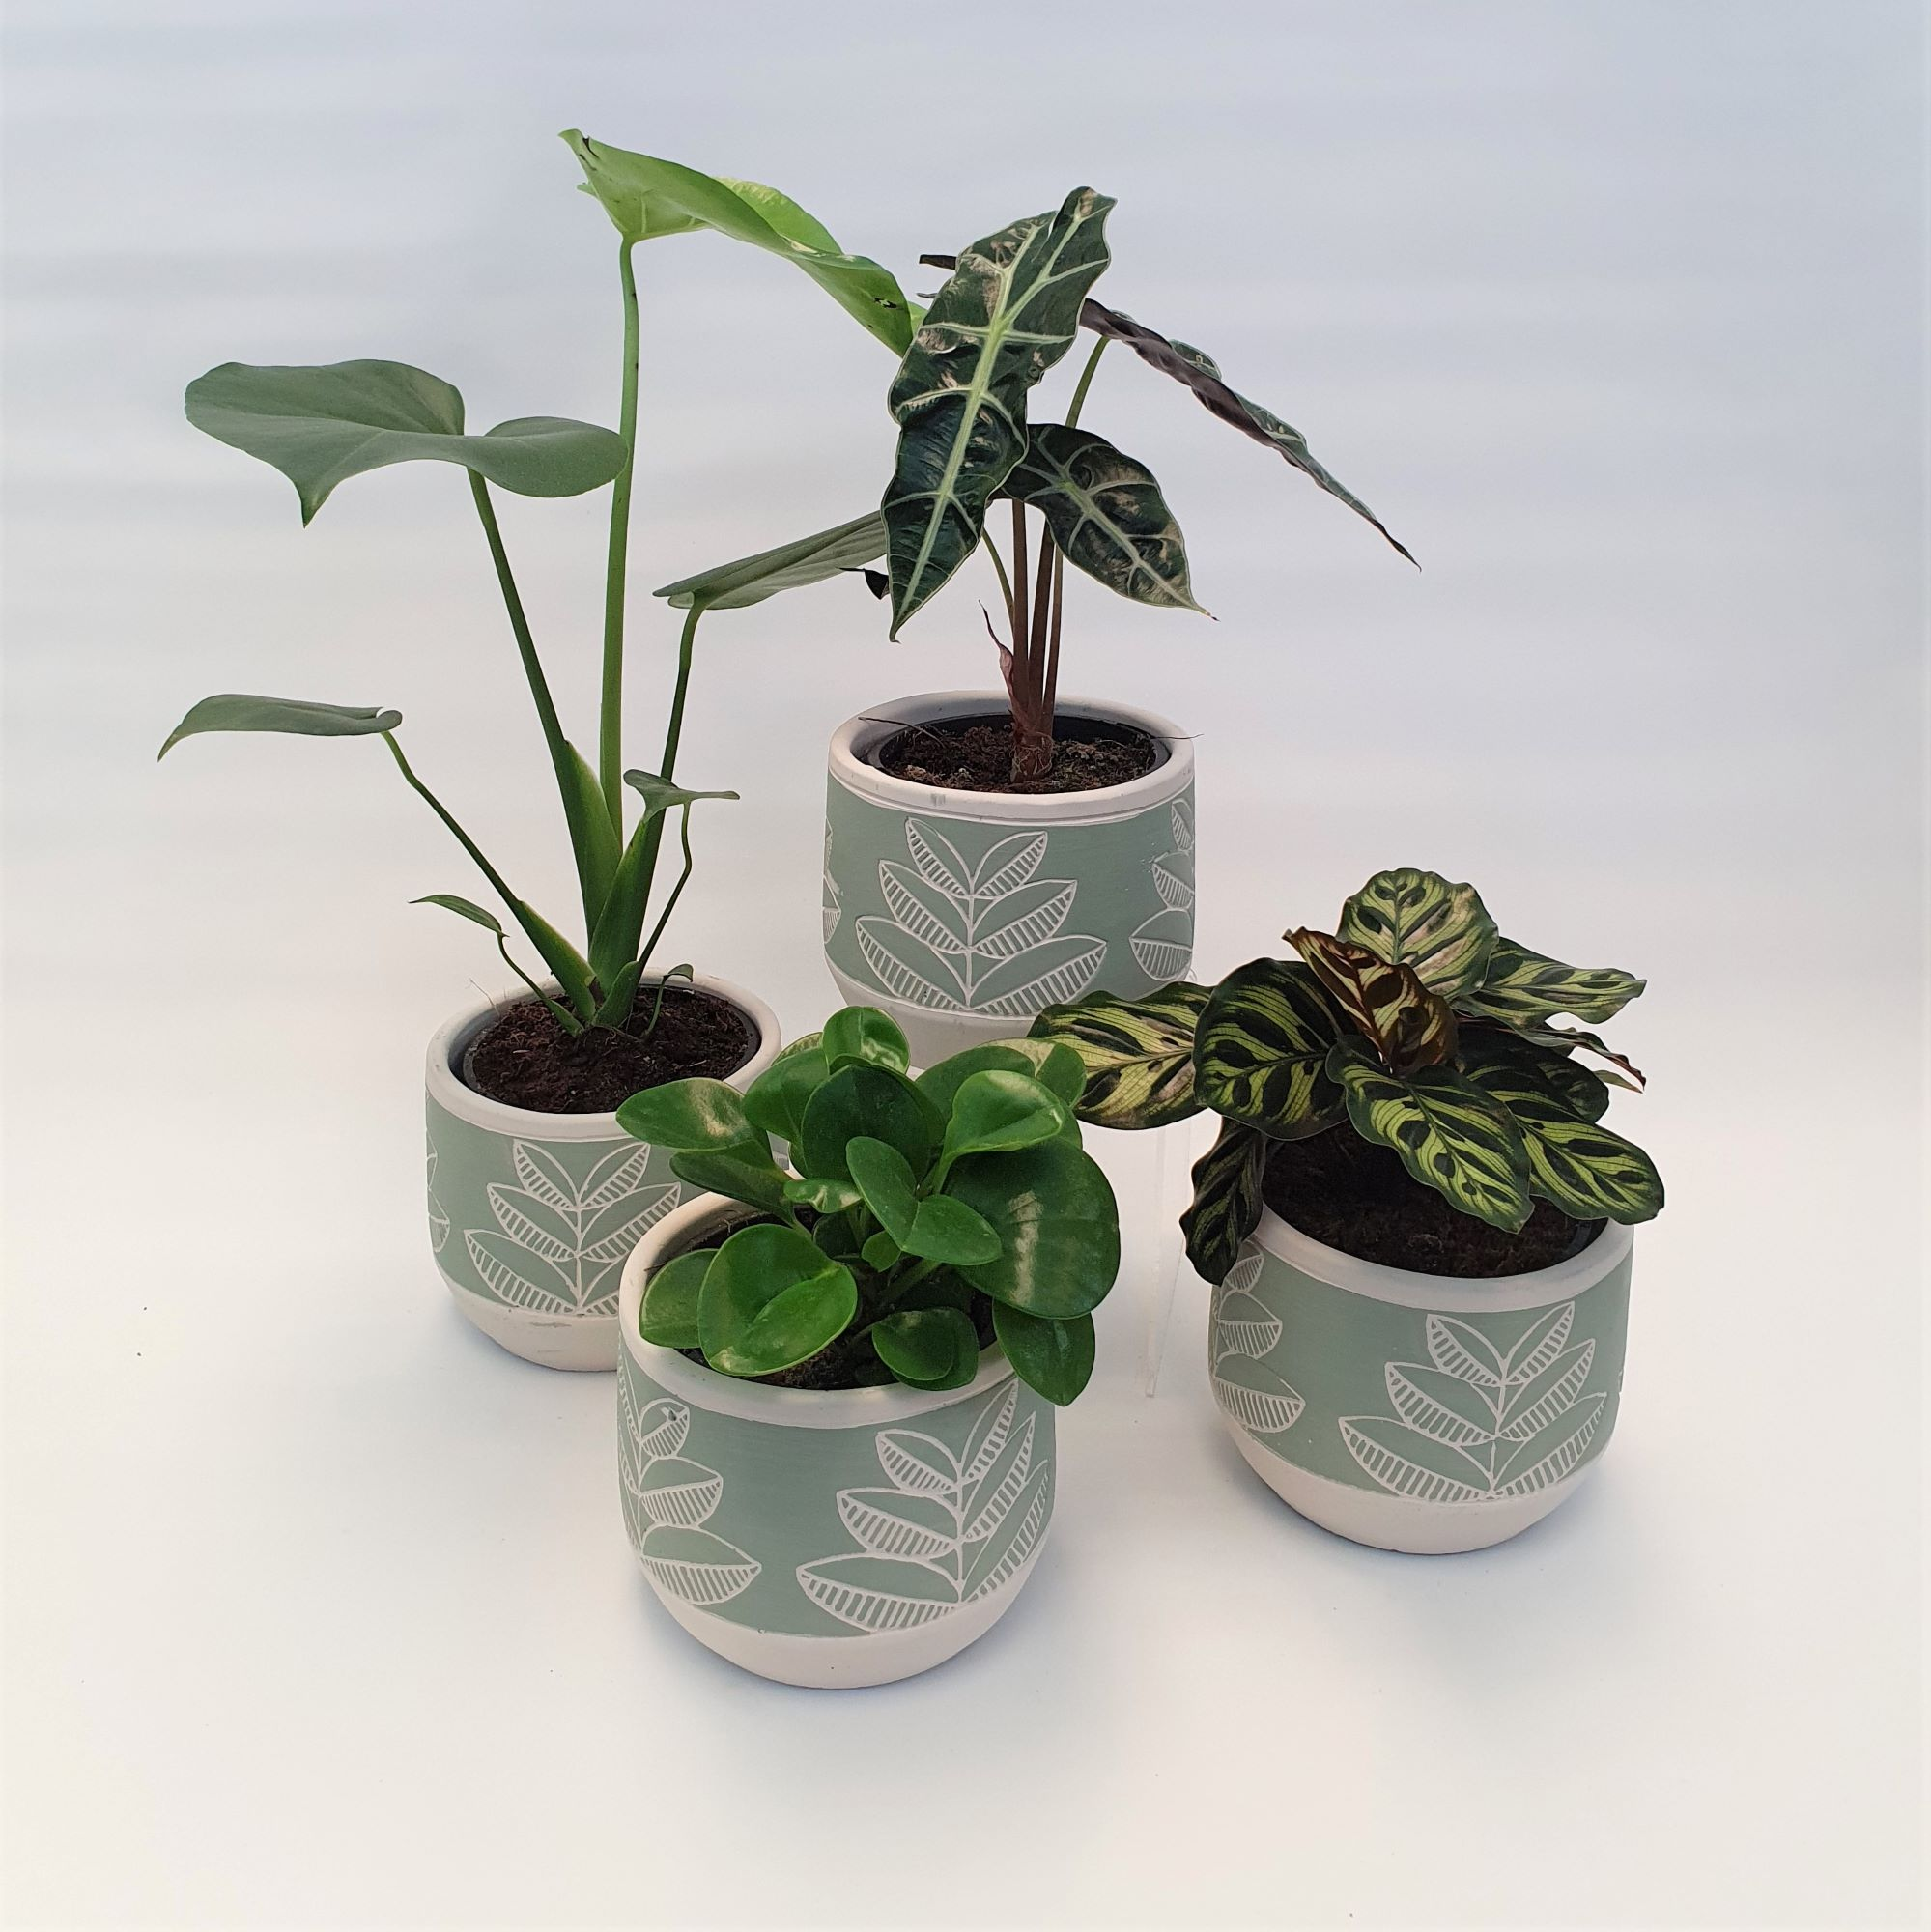 Plantae - Potted indoor plants in a gorgeous ceramic planter - plant types vary according to availability - Anniversary / Romance,Birthday / Congratulations,Get Well,Any Occasion